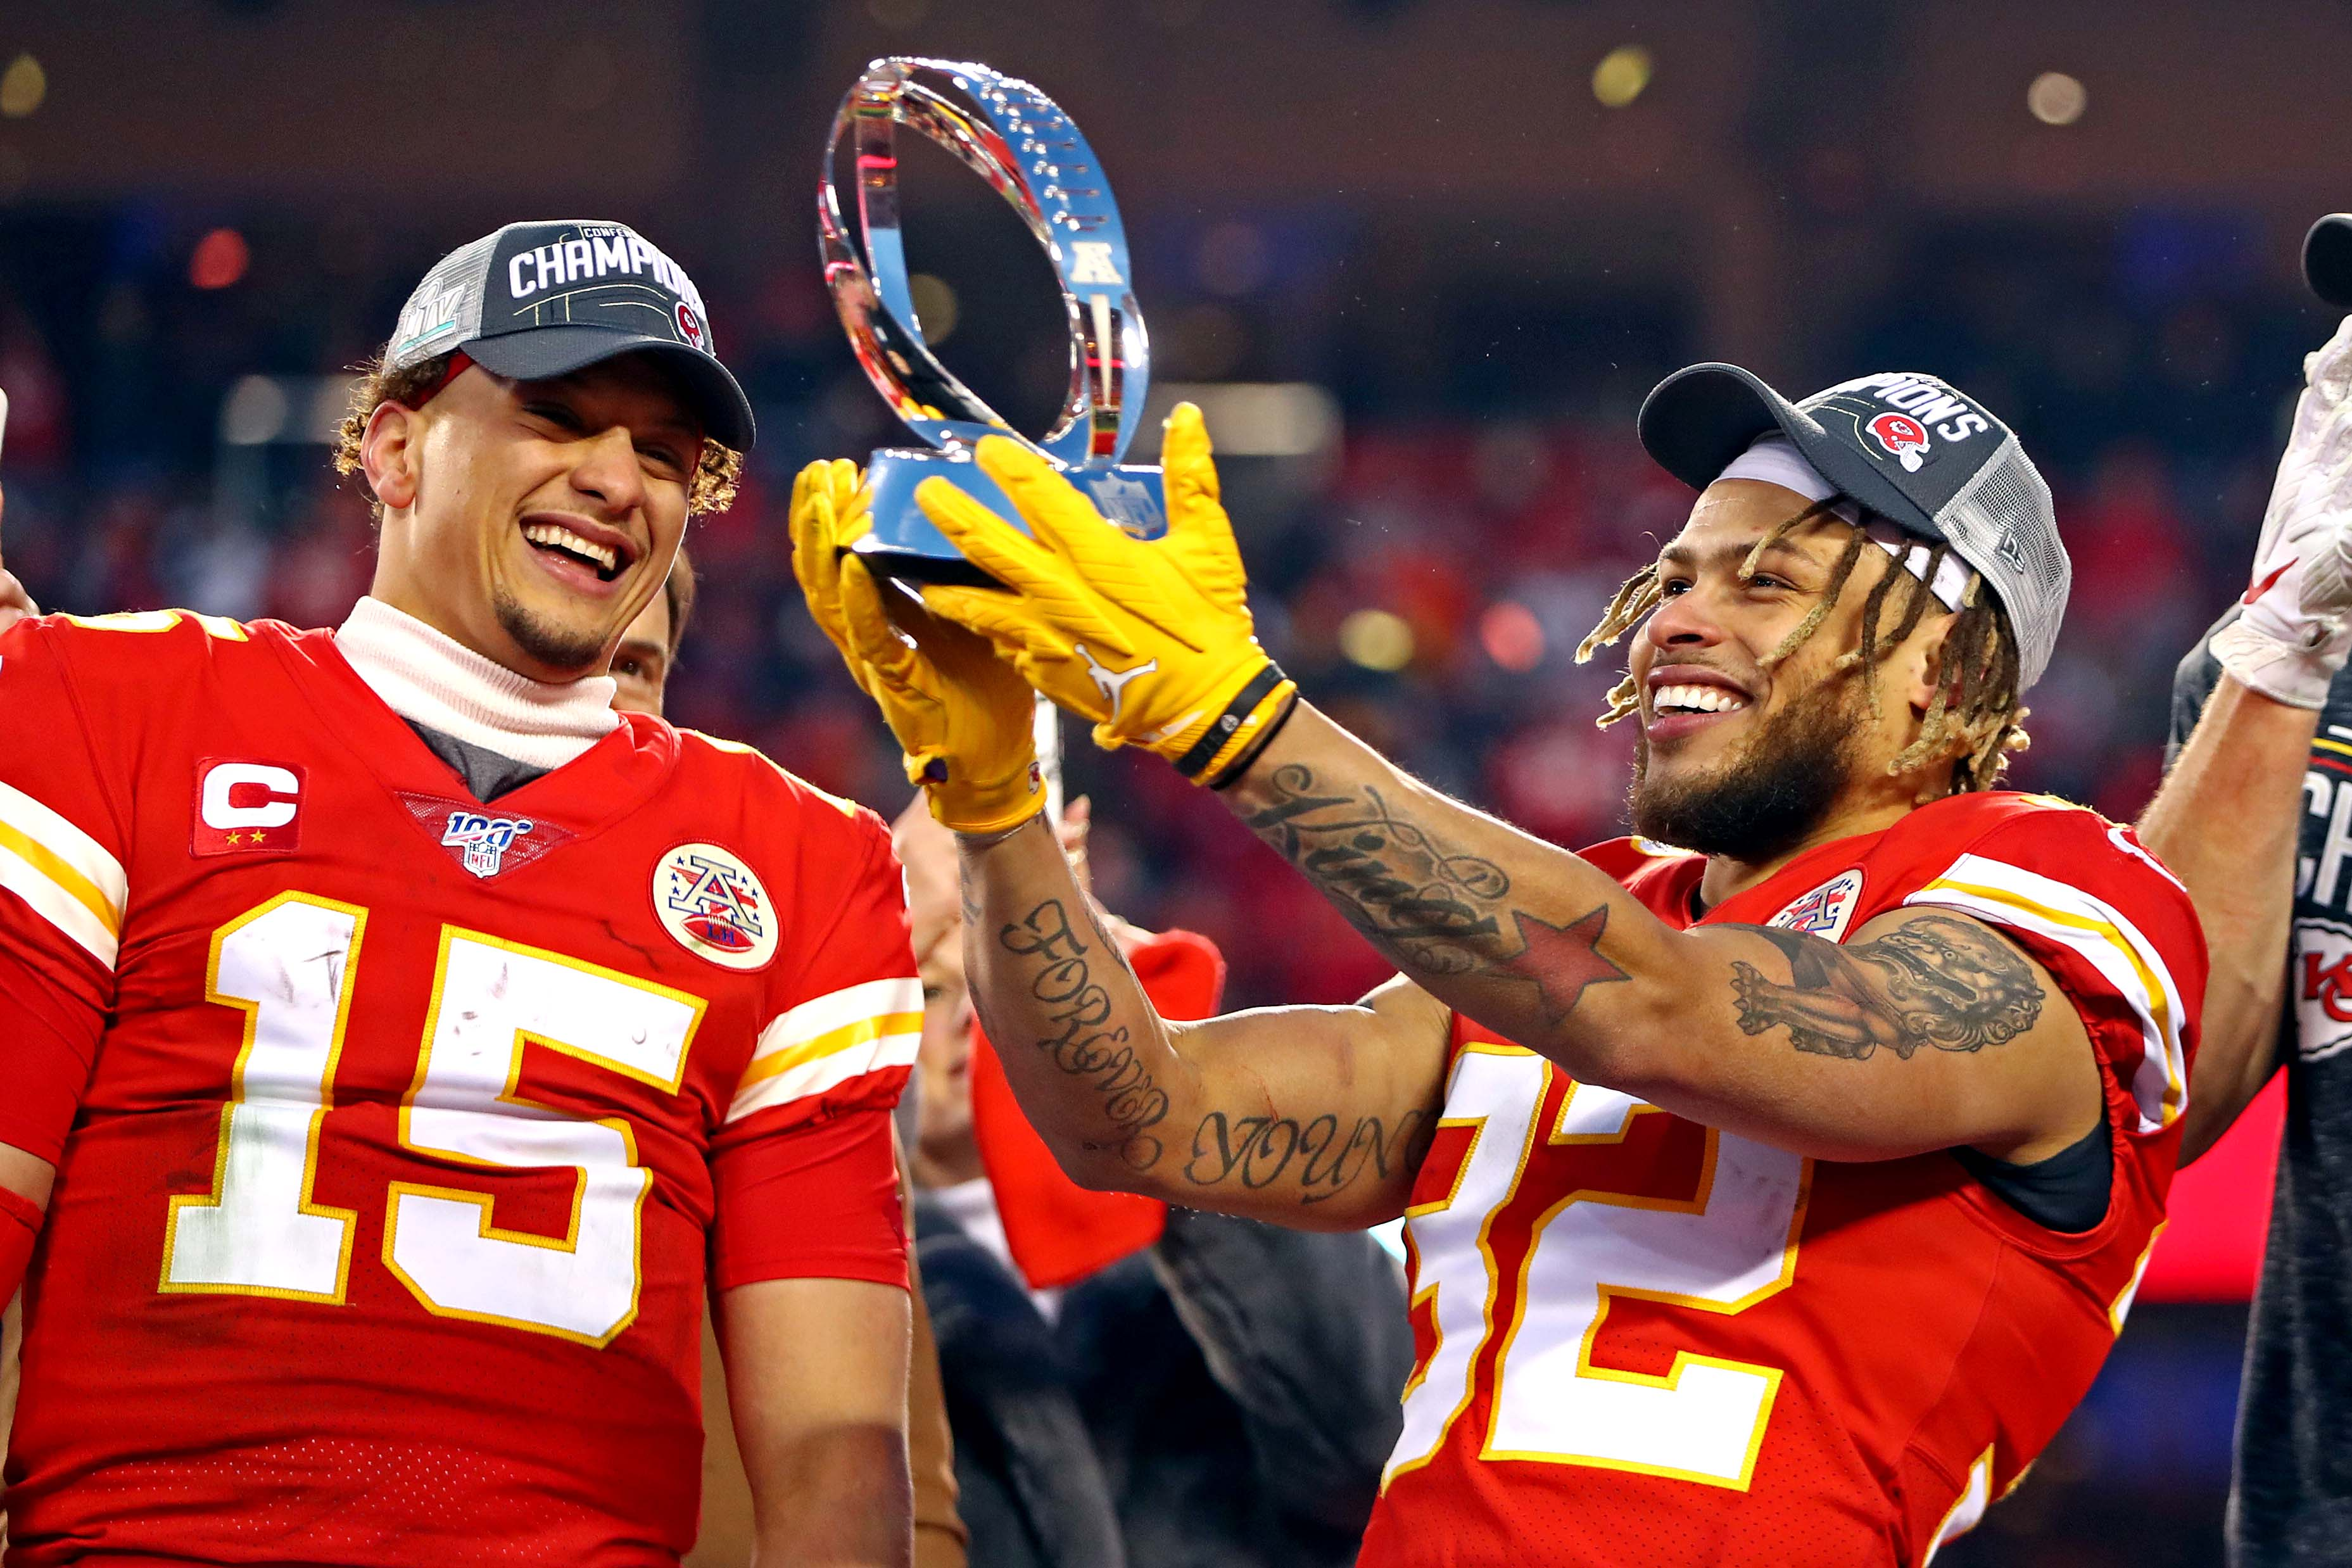 Bold Moves Pay Dividends for Chiefs GM Brett Veach with Super Bowl Berth